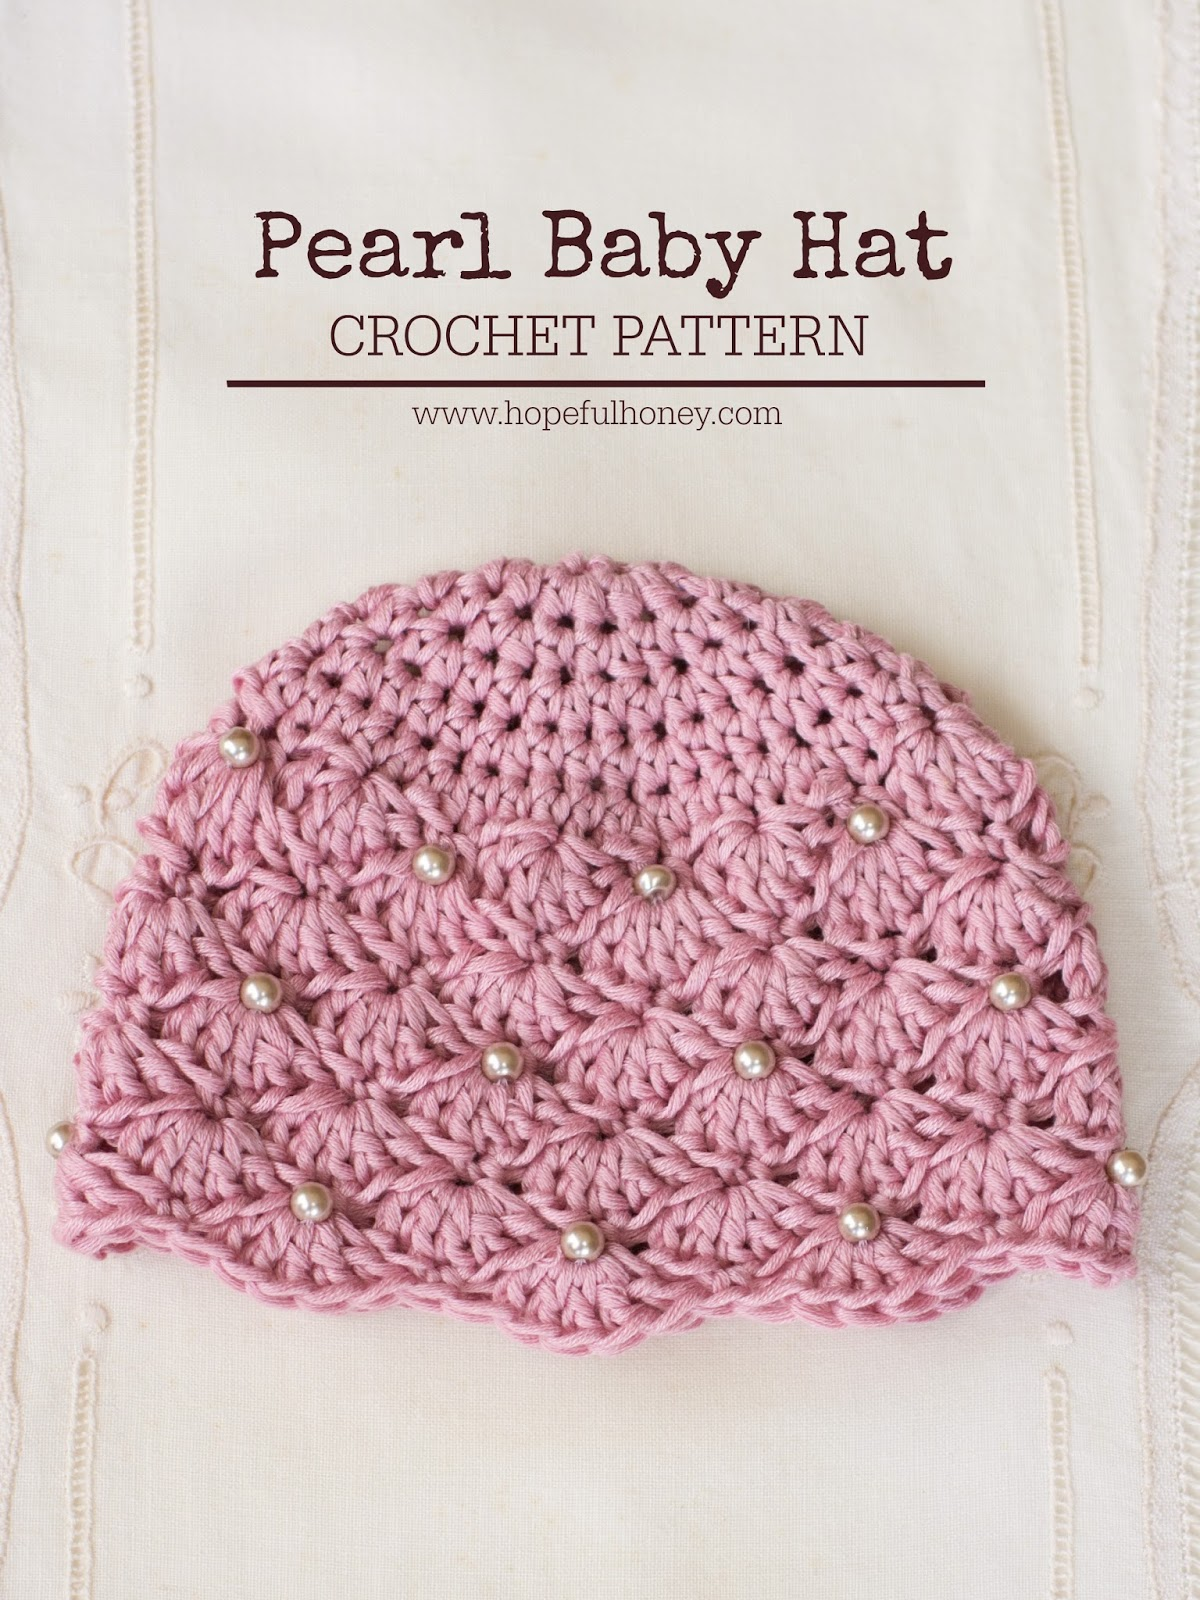 Free Crochet Pattern For A Newborn Hat : Hopeful Honey Craft, Crochet, Create: Vintage Pearl Baby ...